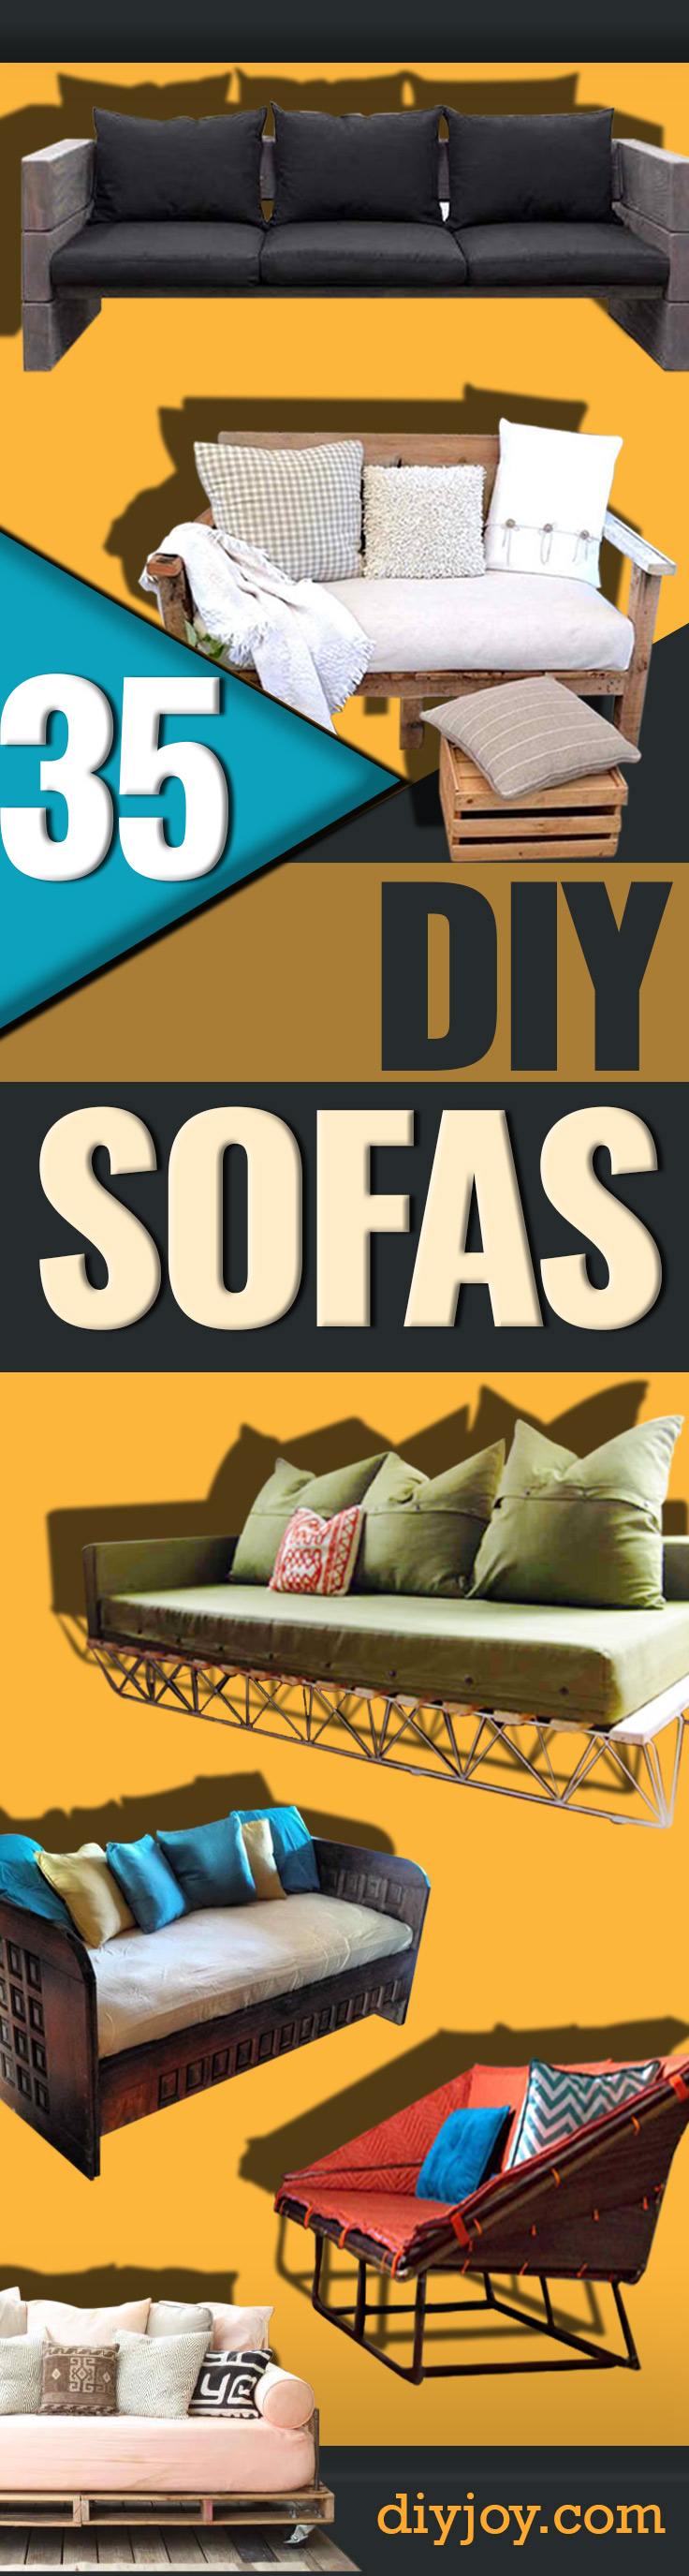 diy sofa - dyi couches - easy DIY furniture - cheap home decor ideas - Make Your Own Sofa or Couch on A Budget - Makeover Your Current Couch With Slipcovers- tutorial and step by step instructions